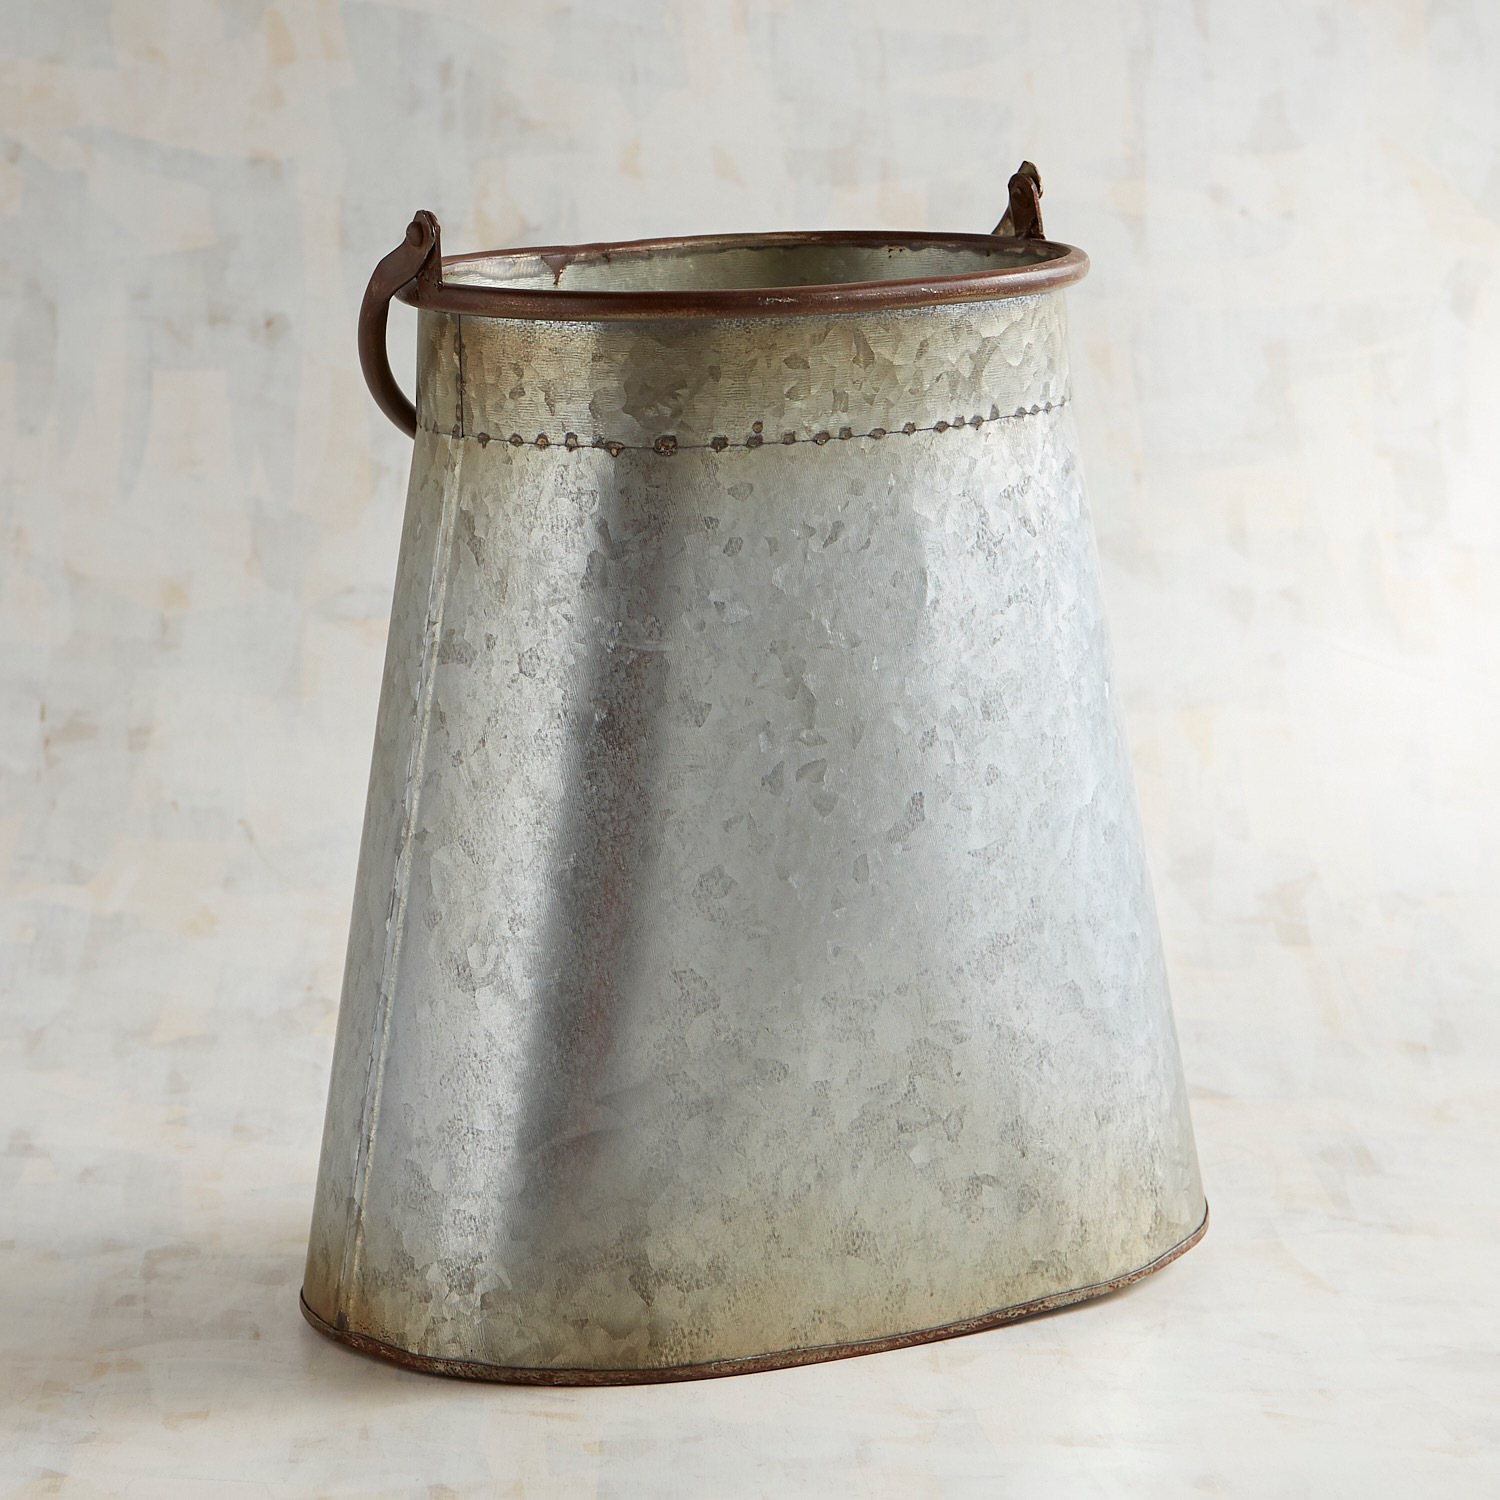 Galvanized Oval Vase with Handle